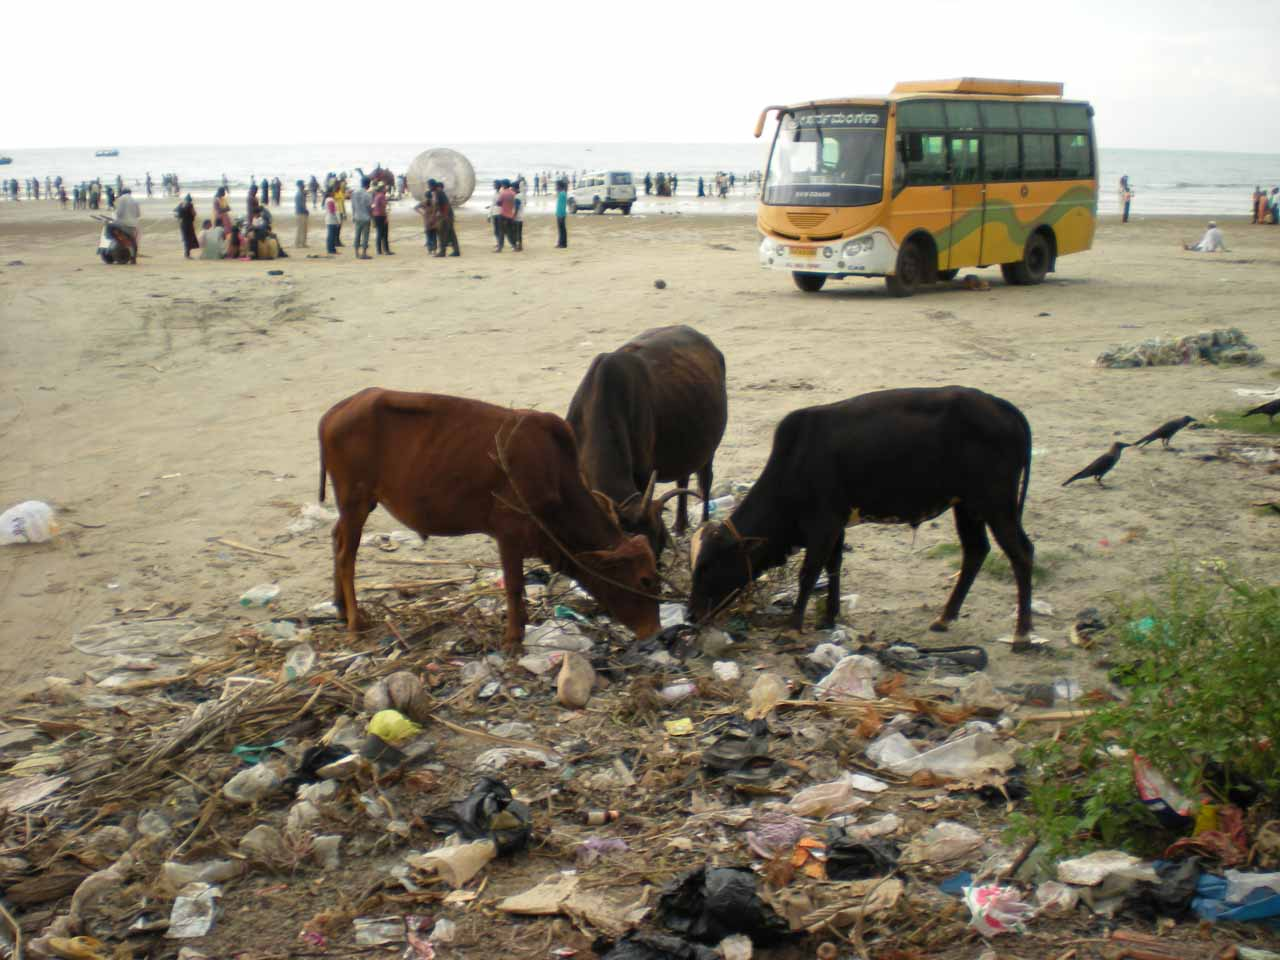 Cows eating litter on the beach